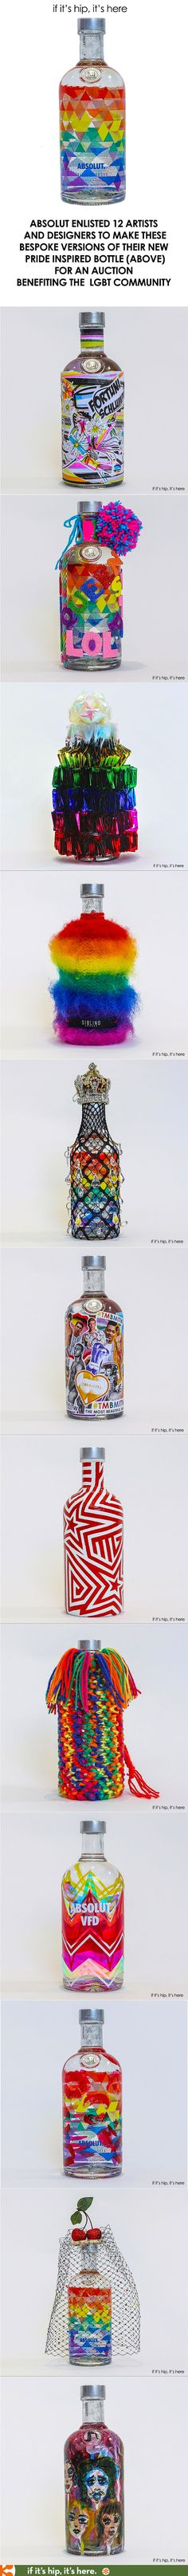 Only 2 days left to bid on these 12 one of a kind, artist-decorated versions of Absolut's new MIX bottle in honor of London Pride 2016.